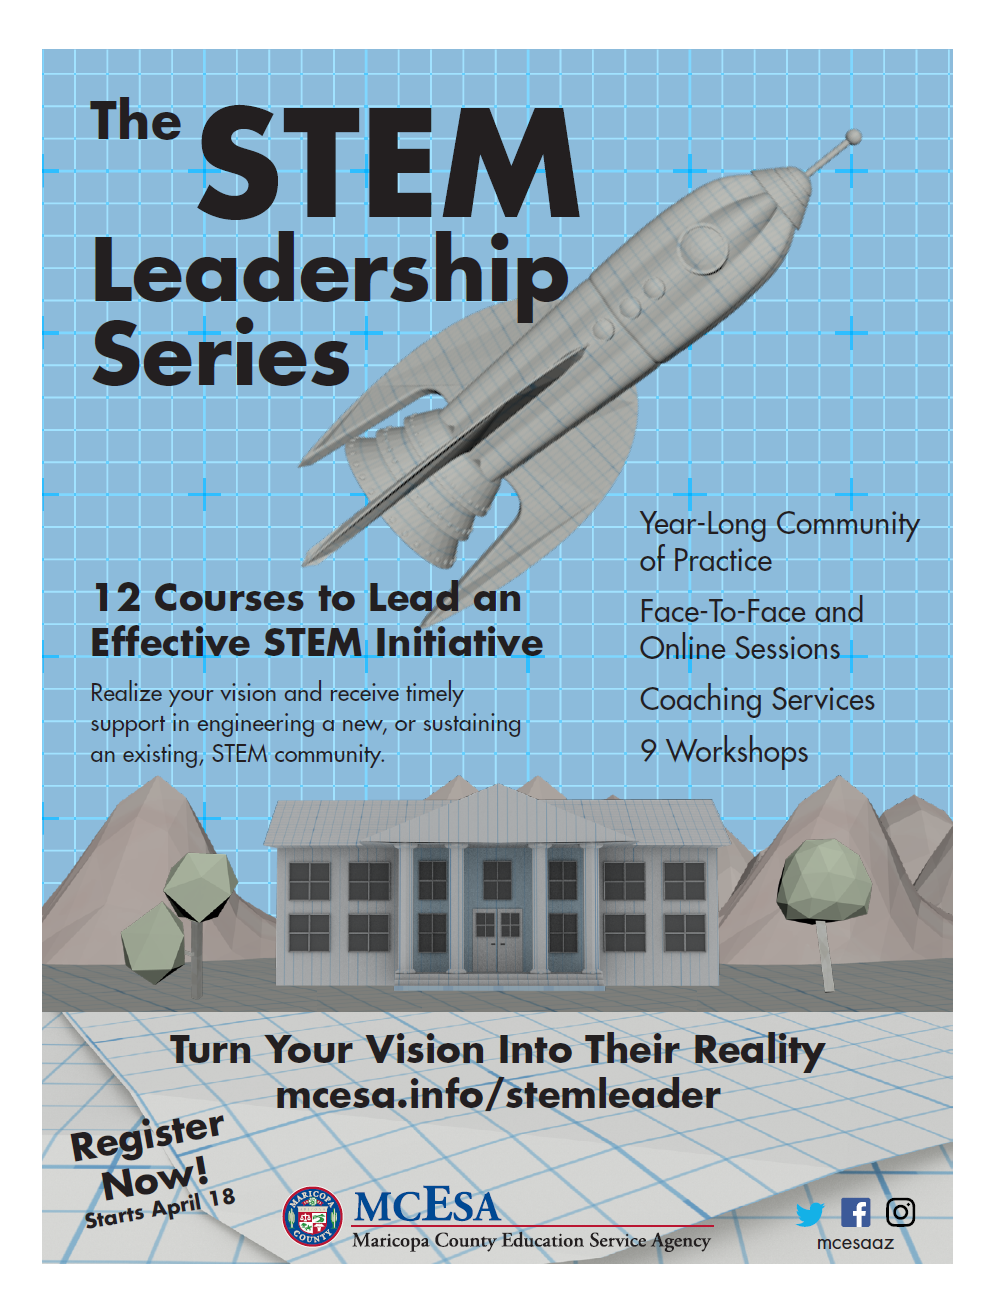 Download the STEM Leadership Series flyer.